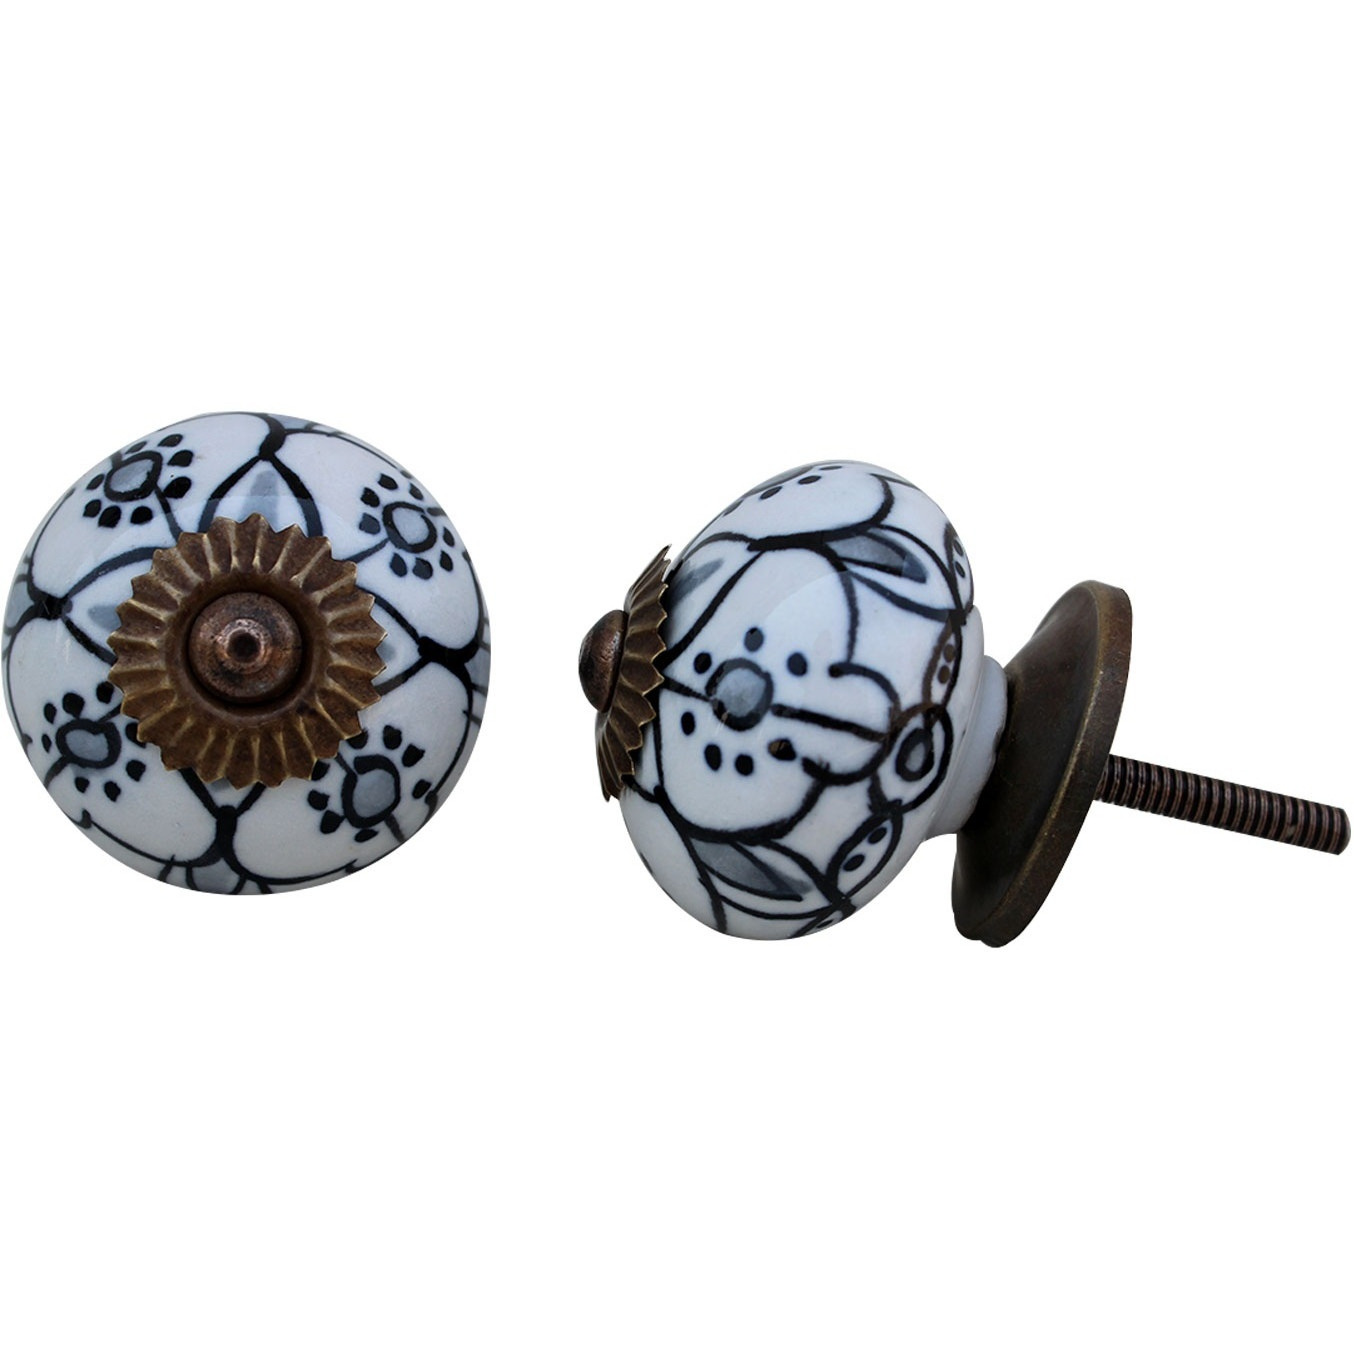 IndianShelf Handmade 17 Piece Ceramic Black Floral Rust Free Drawer Kitchen Knobs/Cabinet Pulls